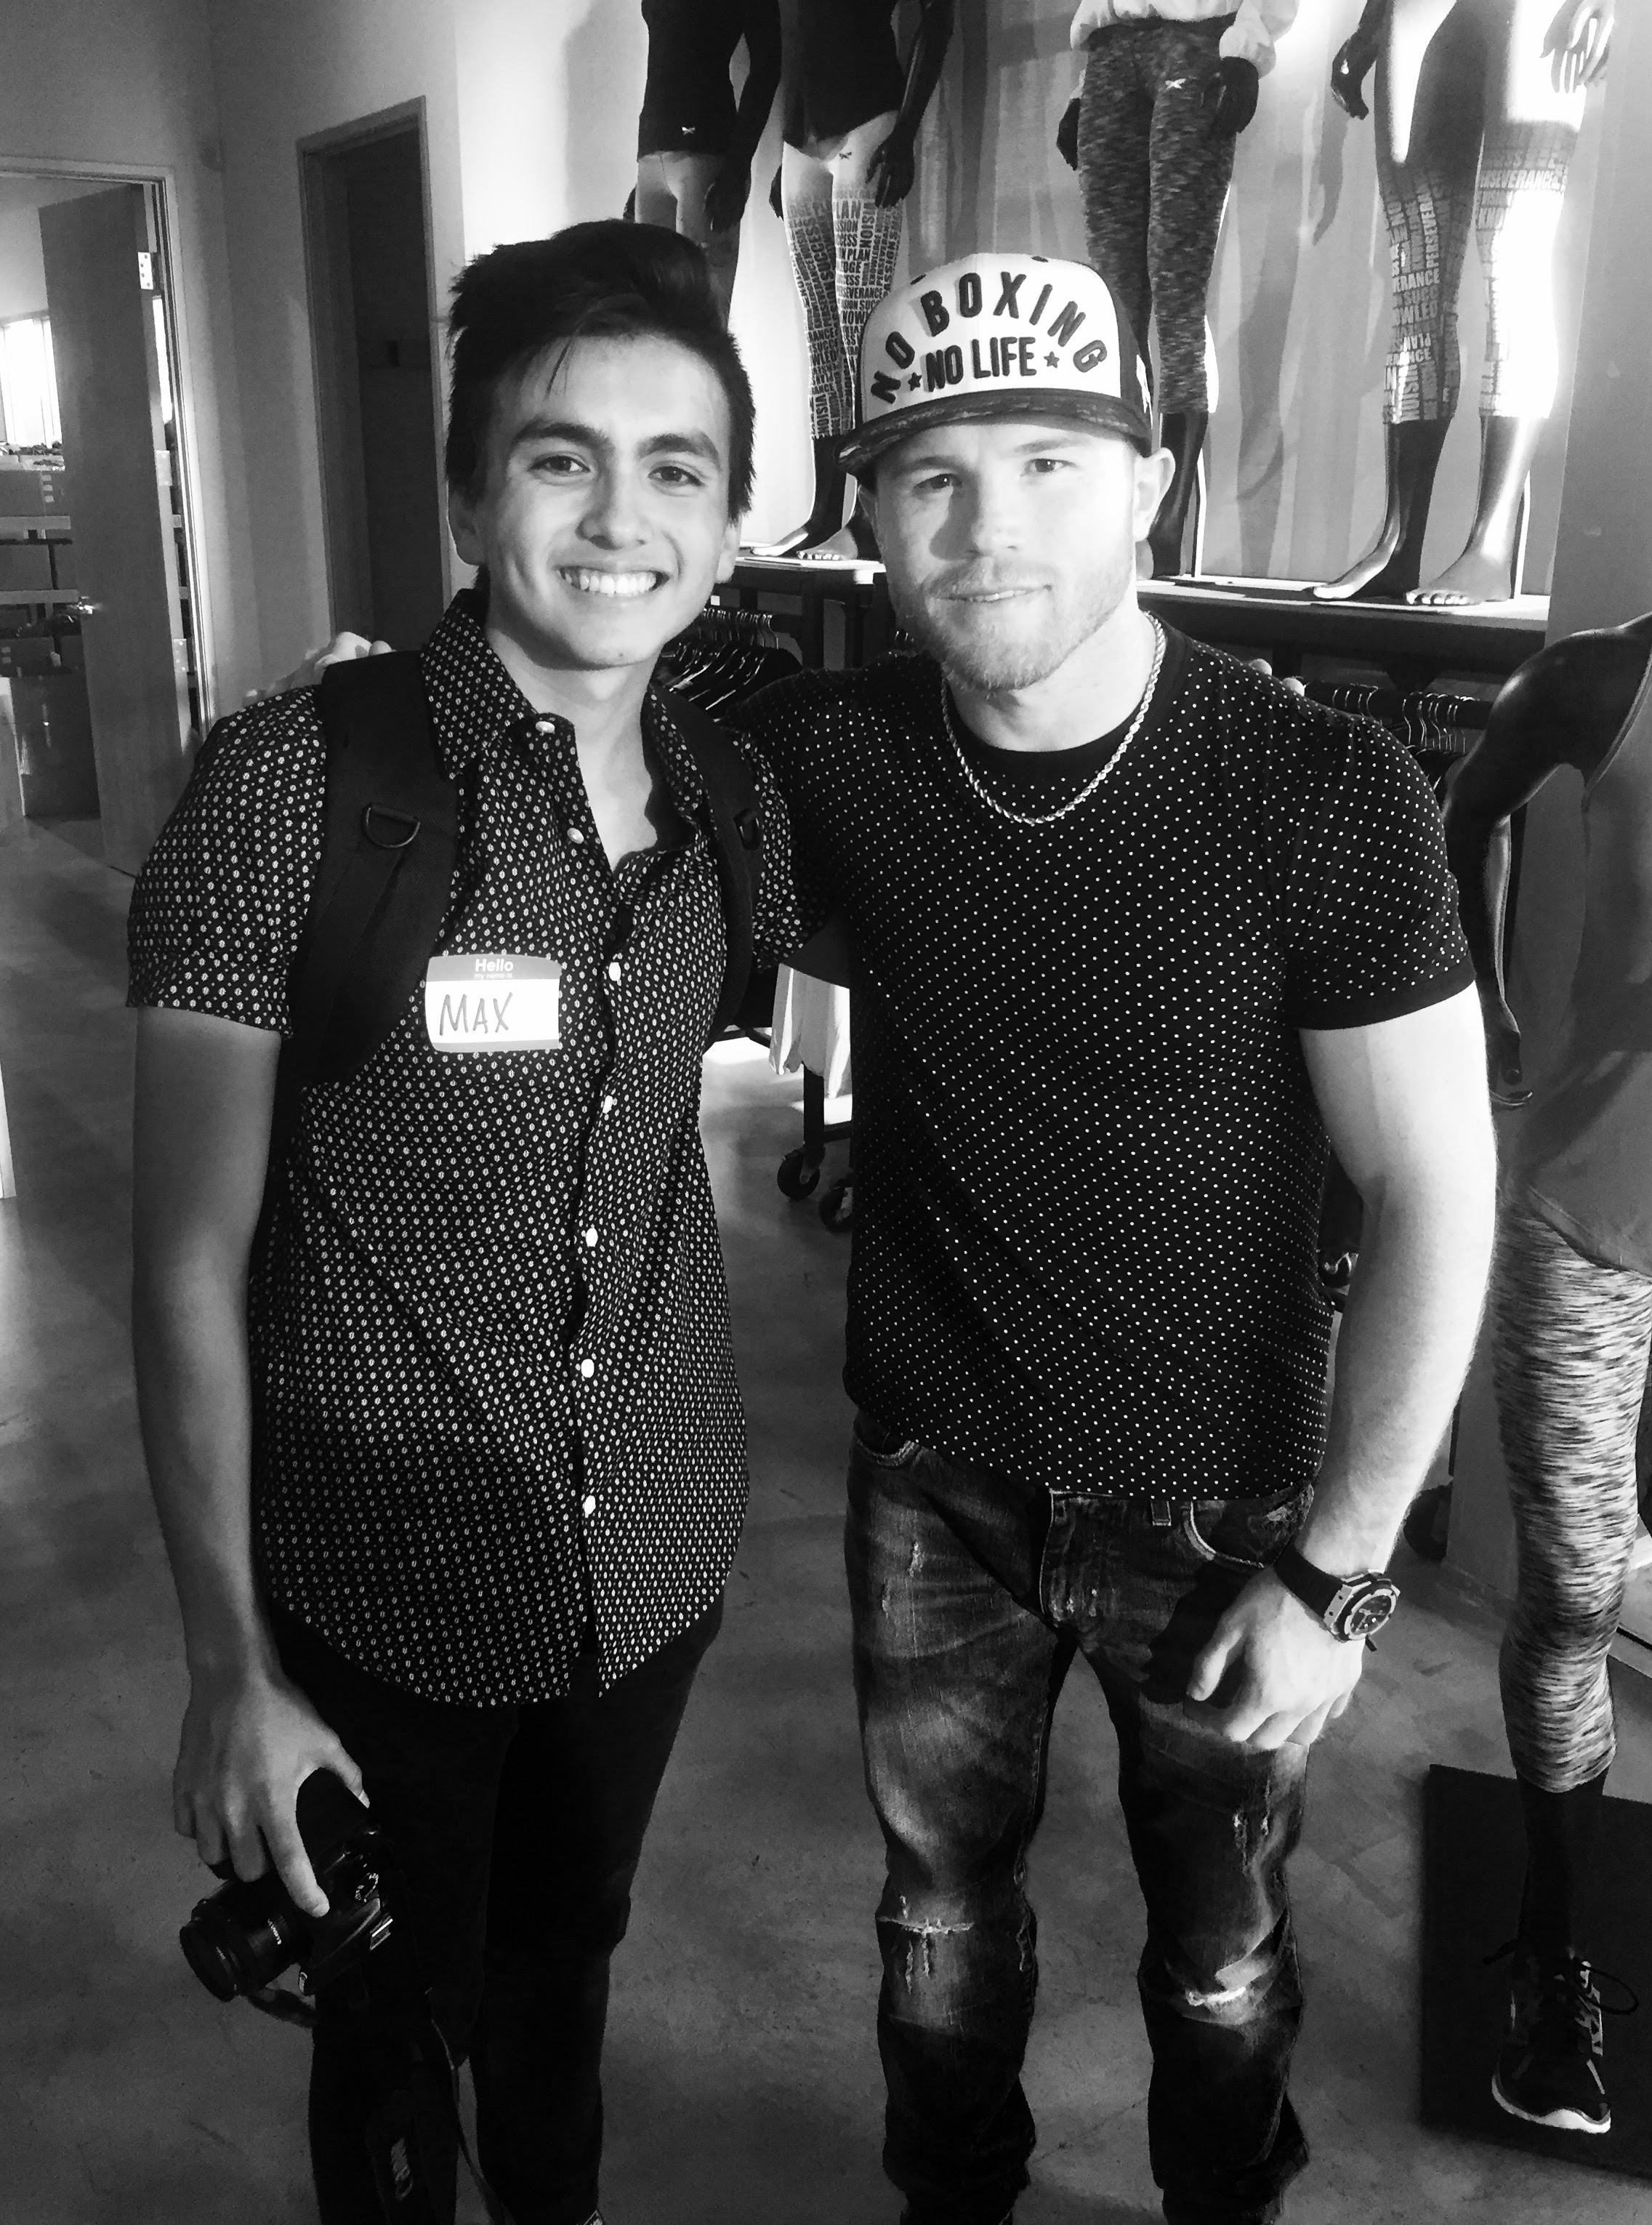 July-Nov 2016: Work with Canelo and Tucanes - freelance work for celebrities added credibility to my brand. an 17 year old without credibility can be tough to sell.